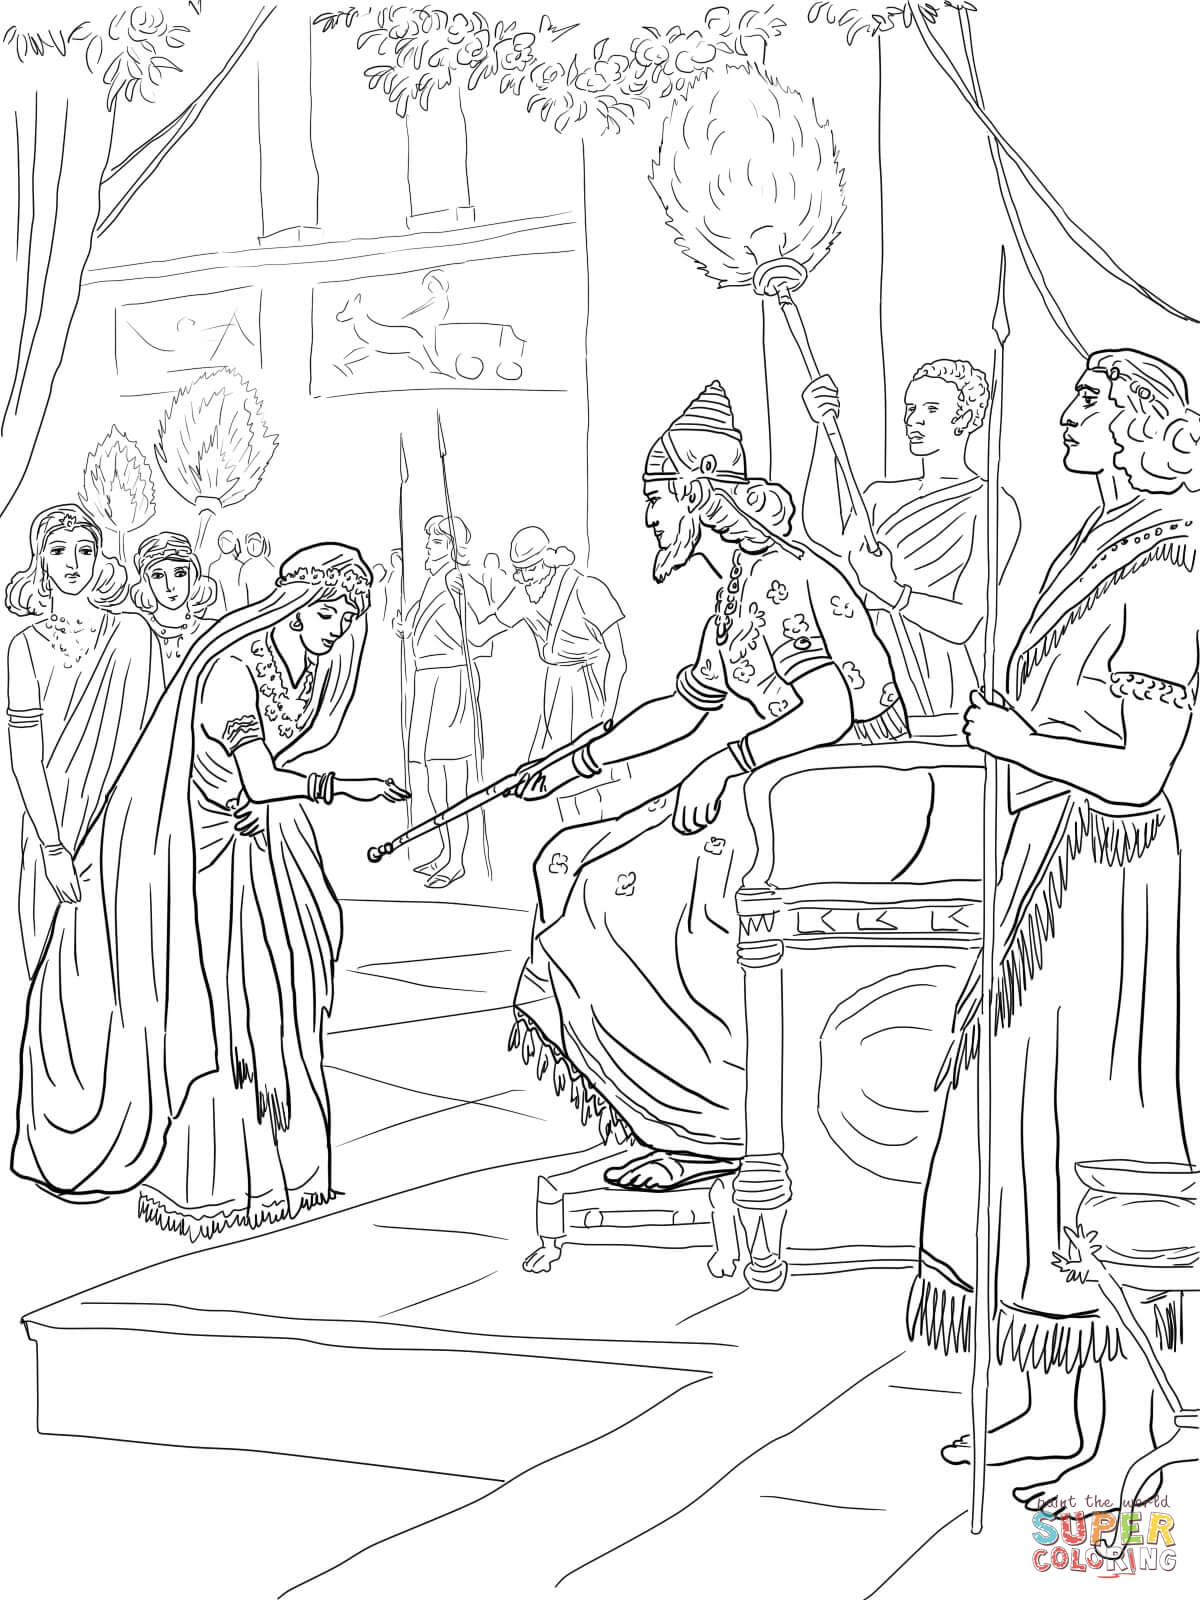 Esther And King Xerxes Coloring Page Free Printable Coloring Pages